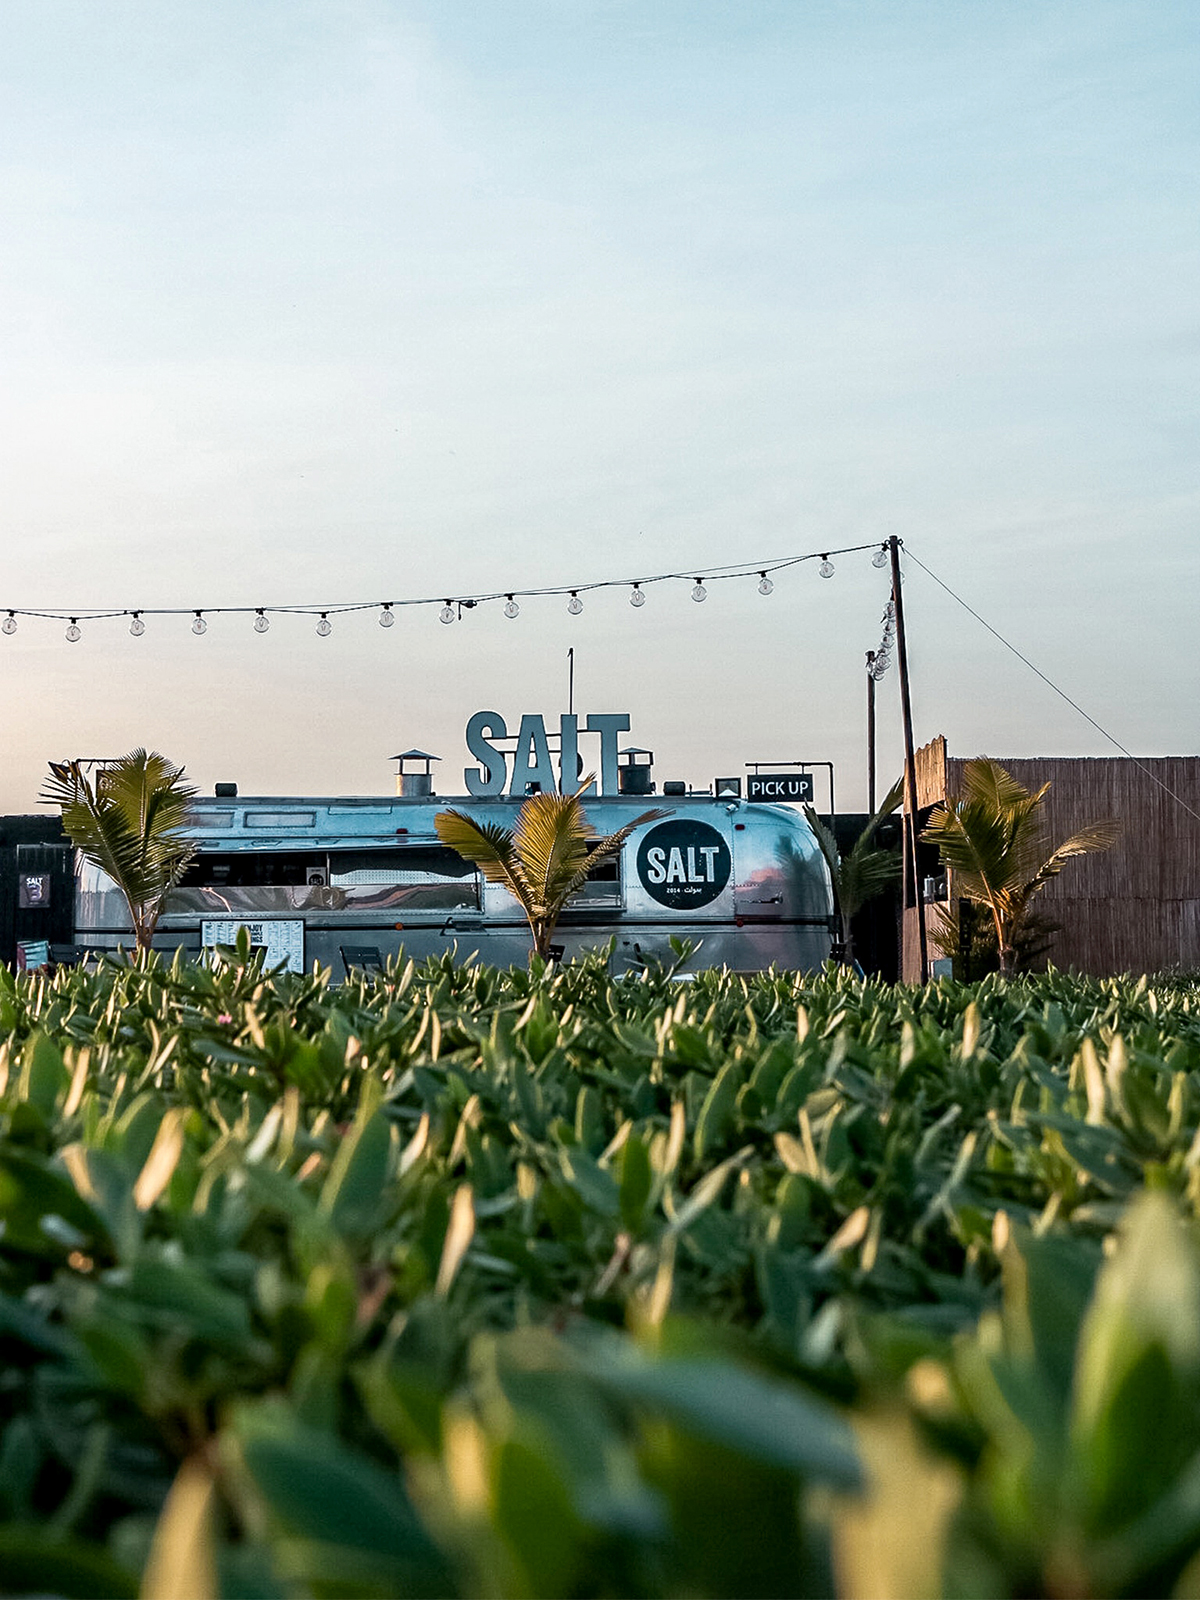 Salt, a homegrown food truck with Joshua Tree vibes